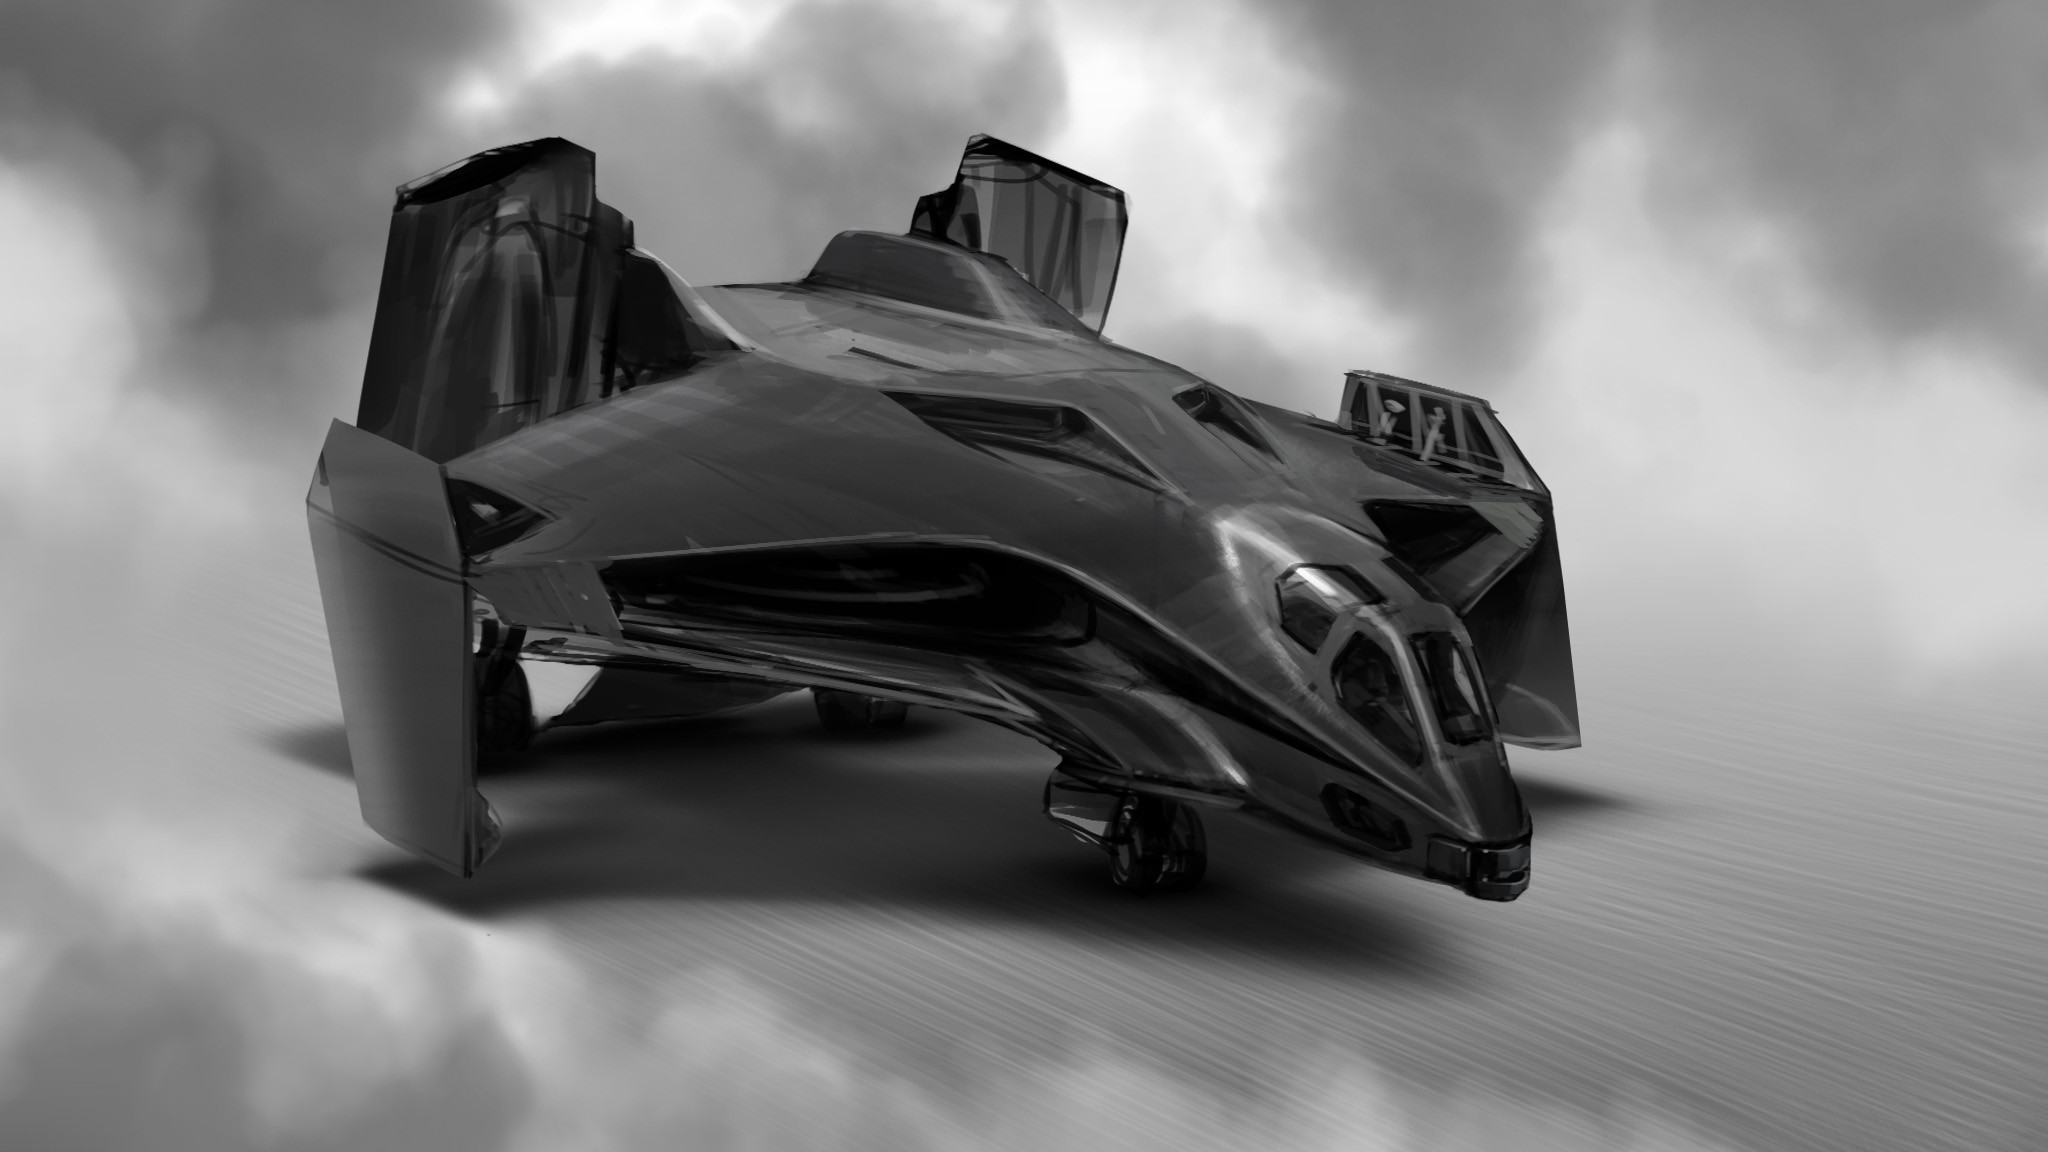 An idea of how the wings could fold for carrier storage, as well as the engines rotating for additional VTOL thrust.